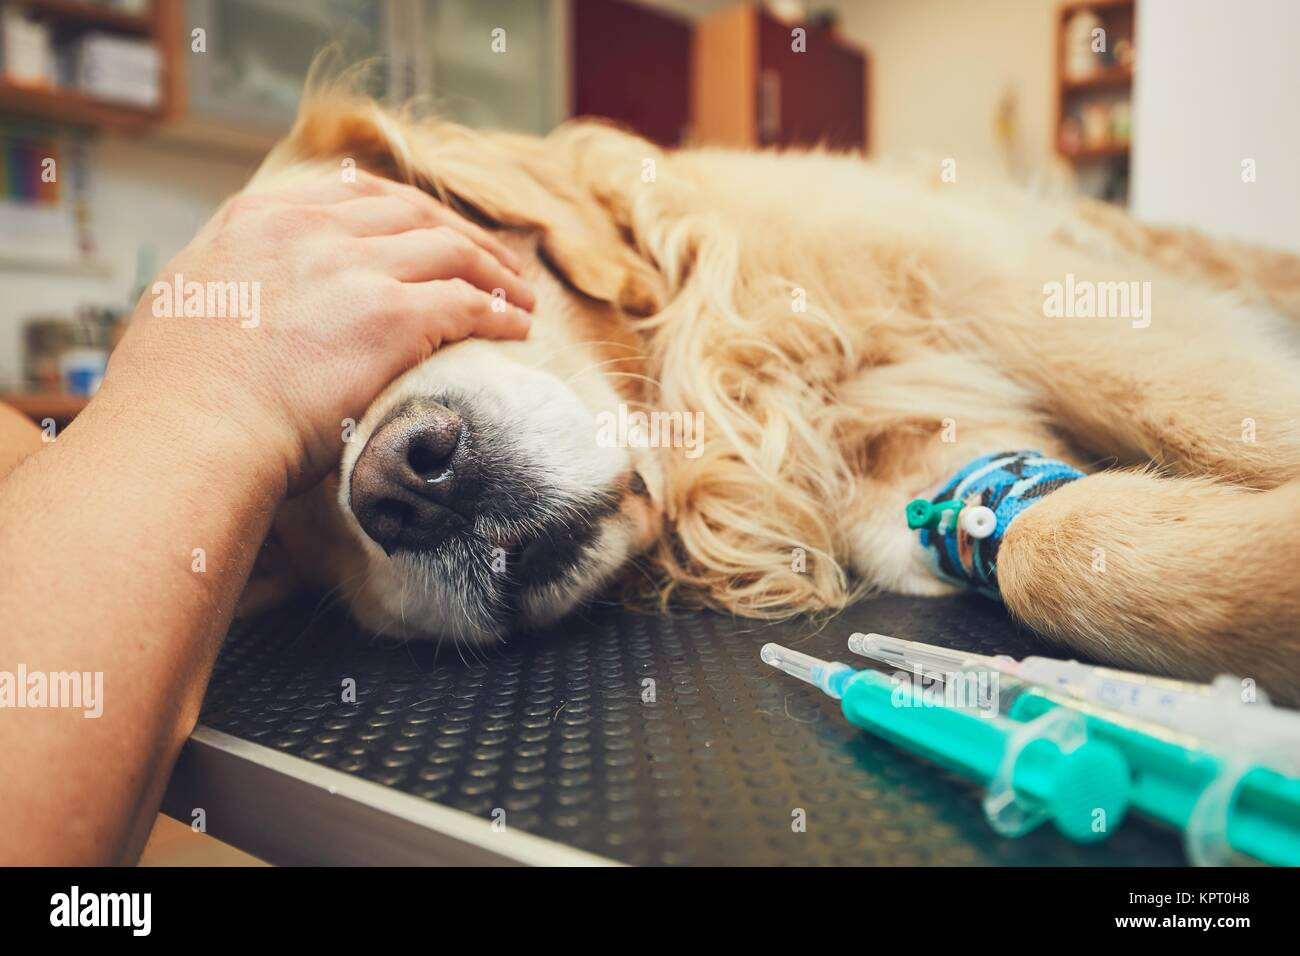 Golden retriever in the animal hospital. Veterinarian preparing the dog for surgery. Stock Photo